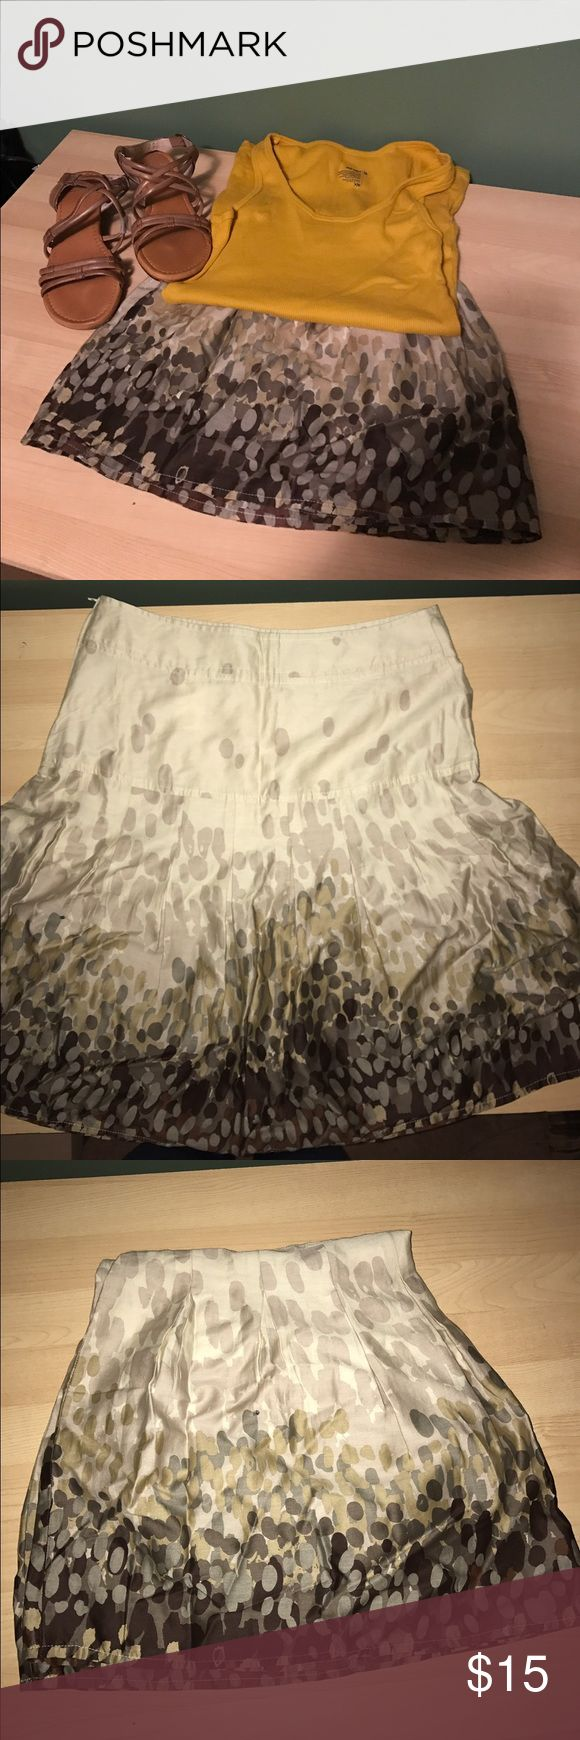 H and M skirt New without tags. Never been worn size 10. Side zipper. Tank top included as free gift, size medium. H&M Skirts Midi